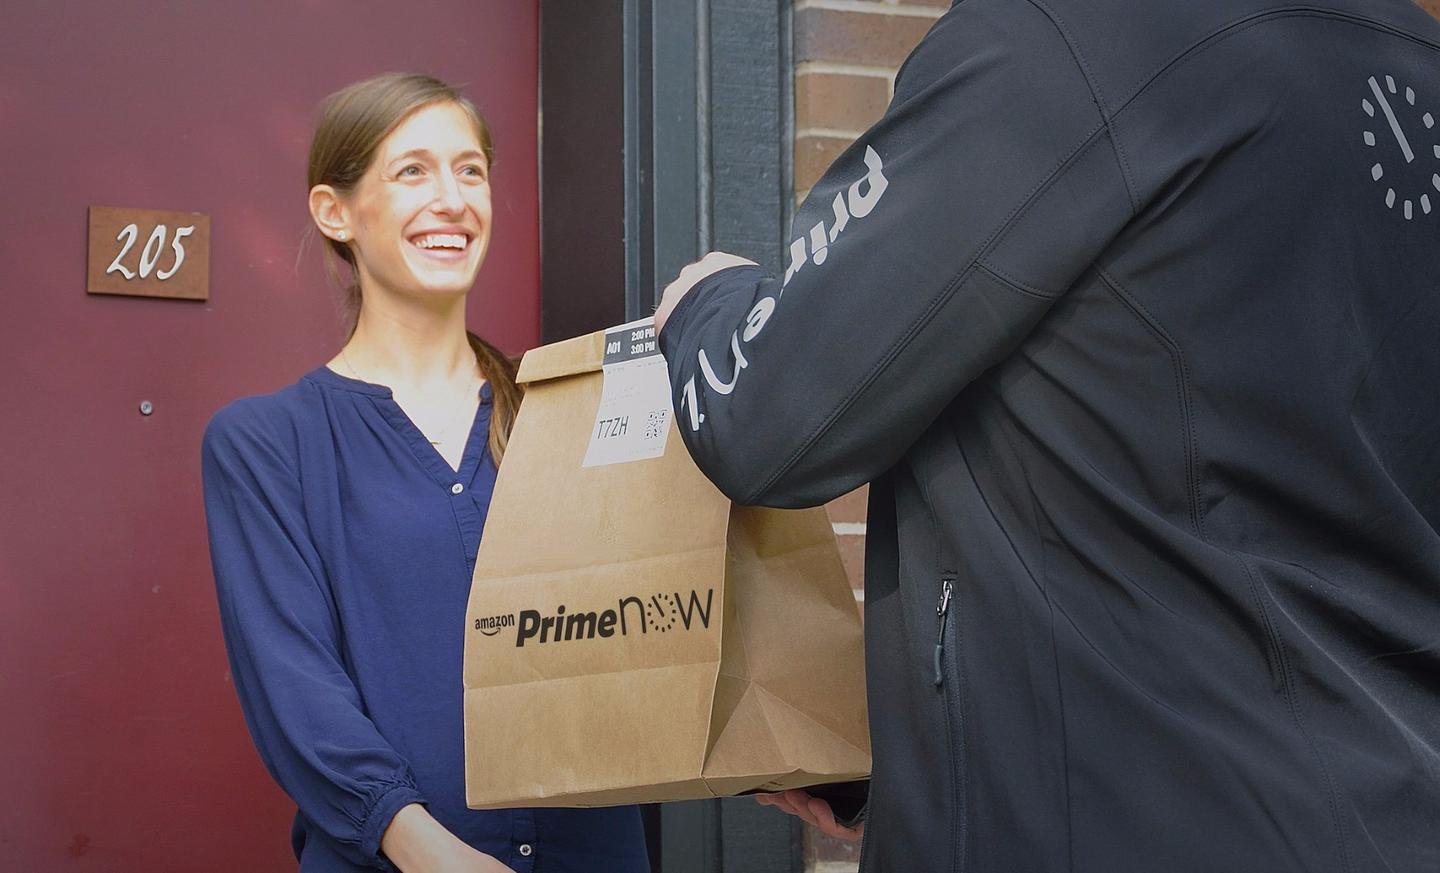 Amazon says drivers will be able to work as much as they want, with delivery opportunities available seven days a week